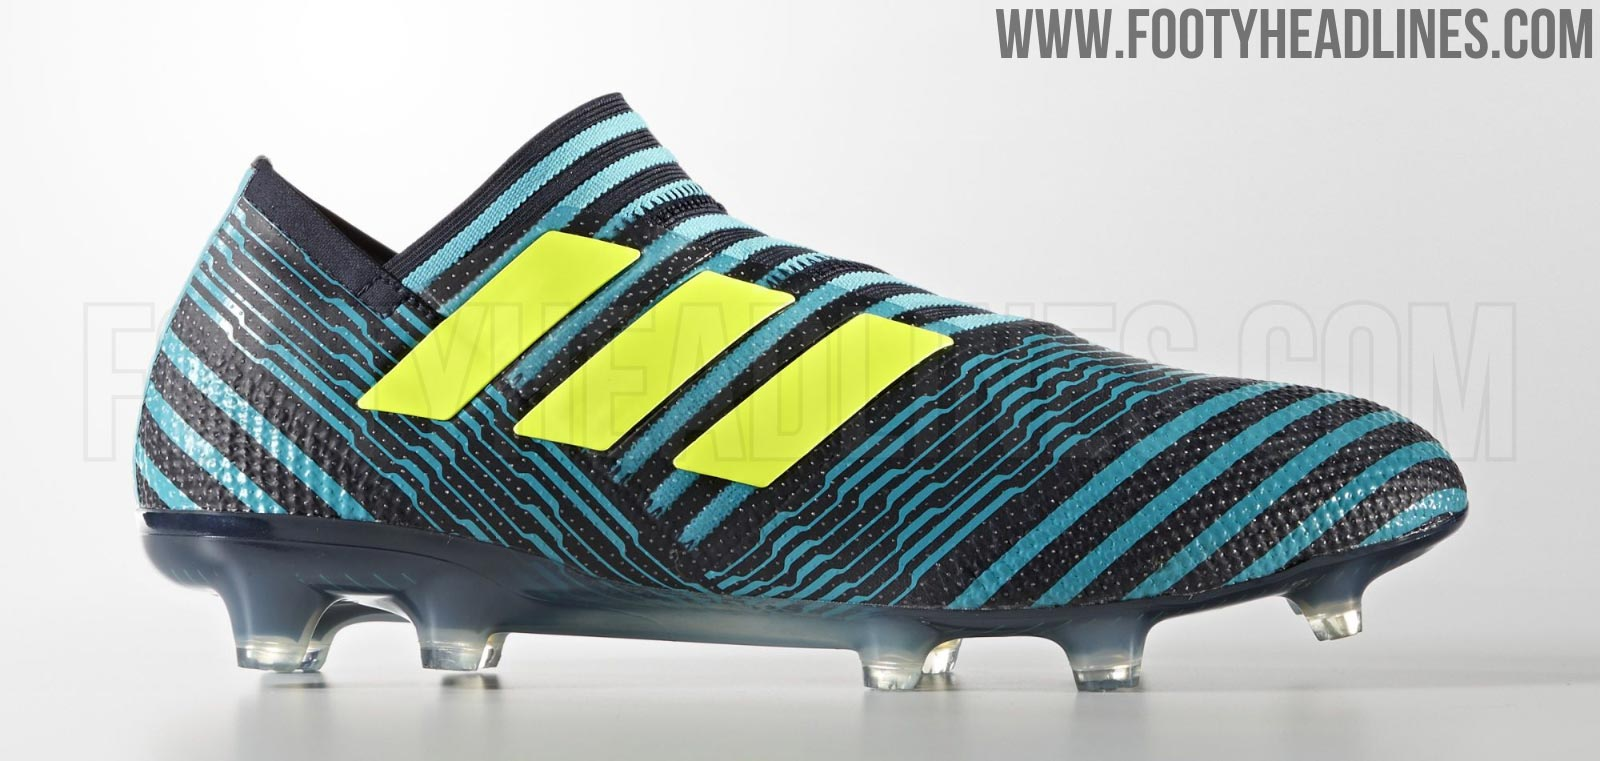 adidas ace copa nemeziz nemeziz messi and x 2017 18. Black Bedroom Furniture Sets. Home Design Ideas